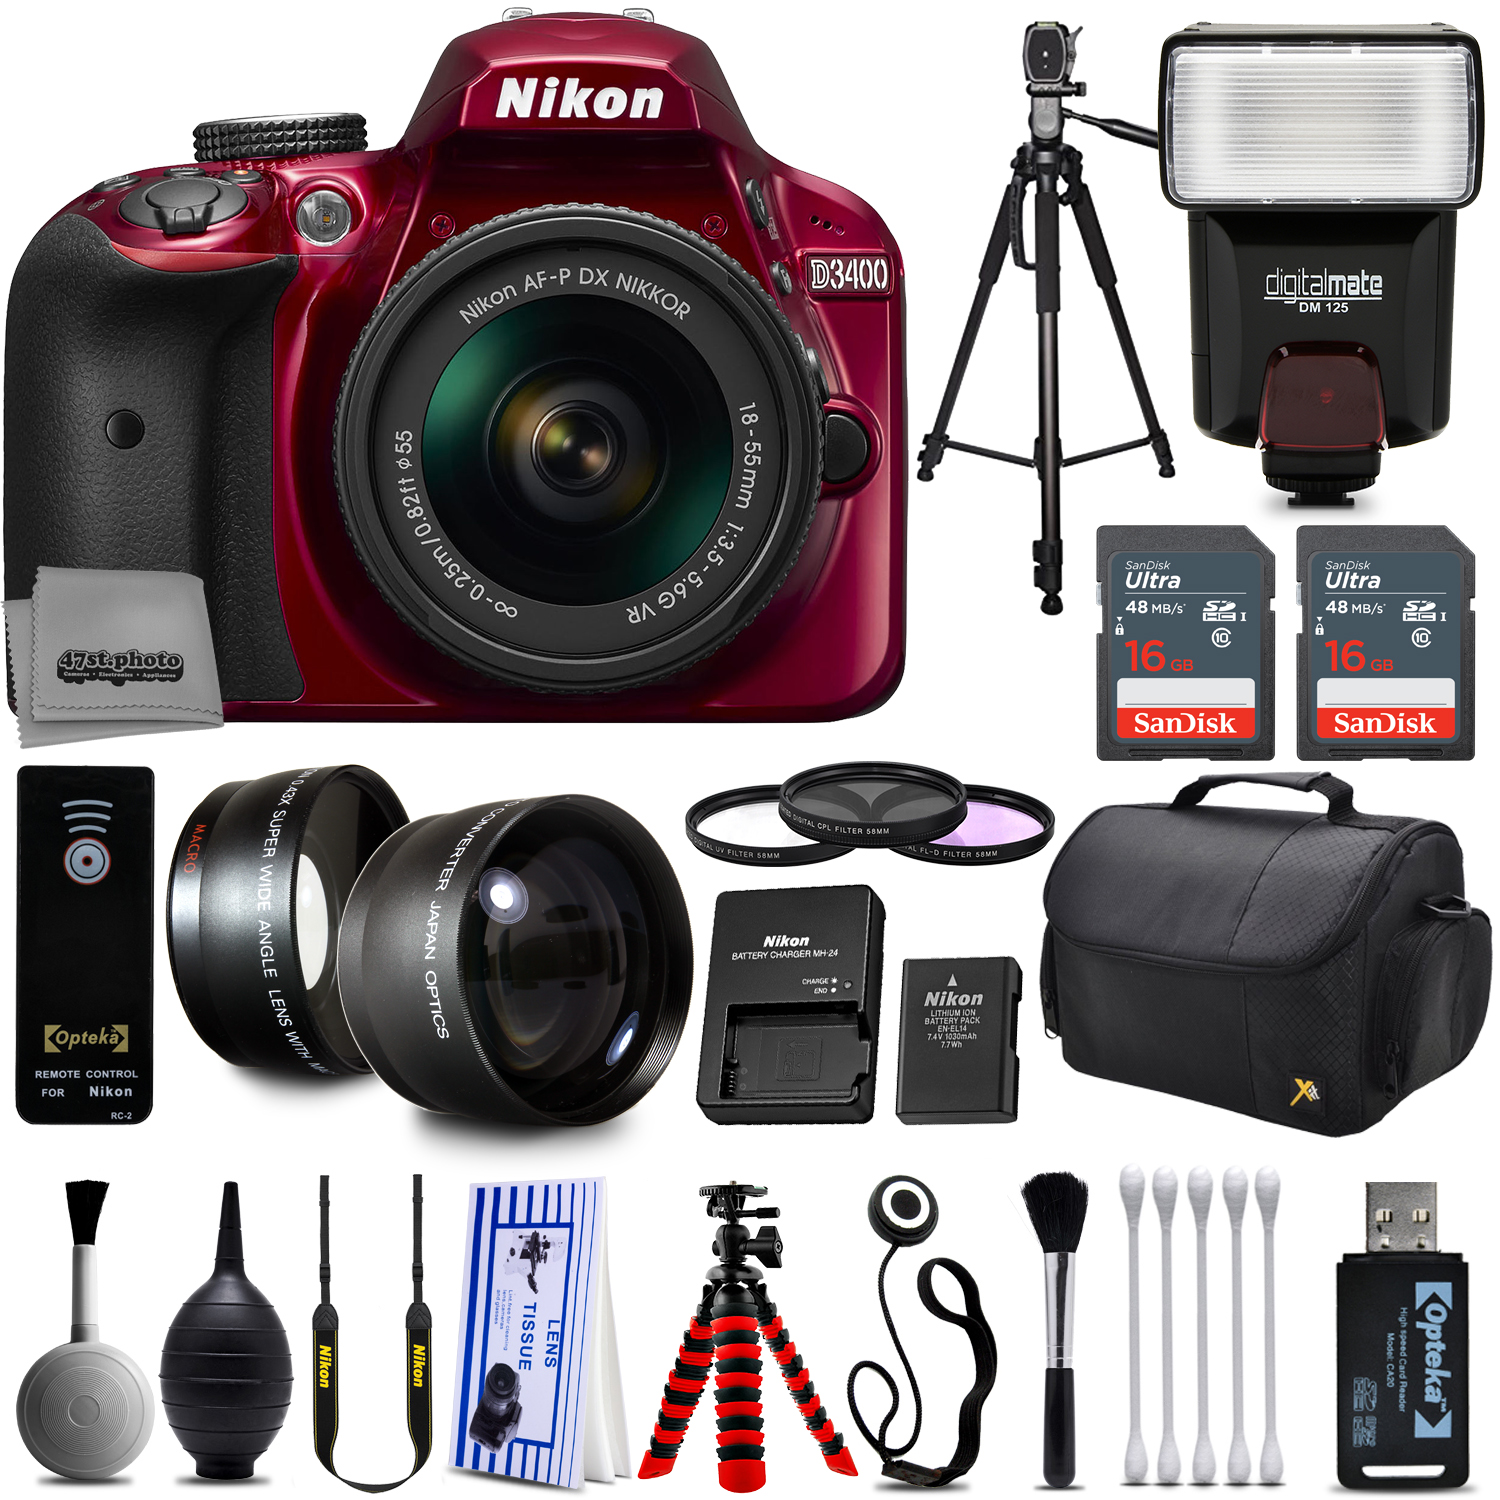 Red Nikon D3200 Digital SLR Camera + 18-55mm AF-S DX Nikkor VR + 2.2X Telephoto and 0.43X Macro Lens Kit + 32GB Memory + Bounce Swivel Flash + Tripod + Padded Bag + UV CPL FLD Filter Bundle + Remote